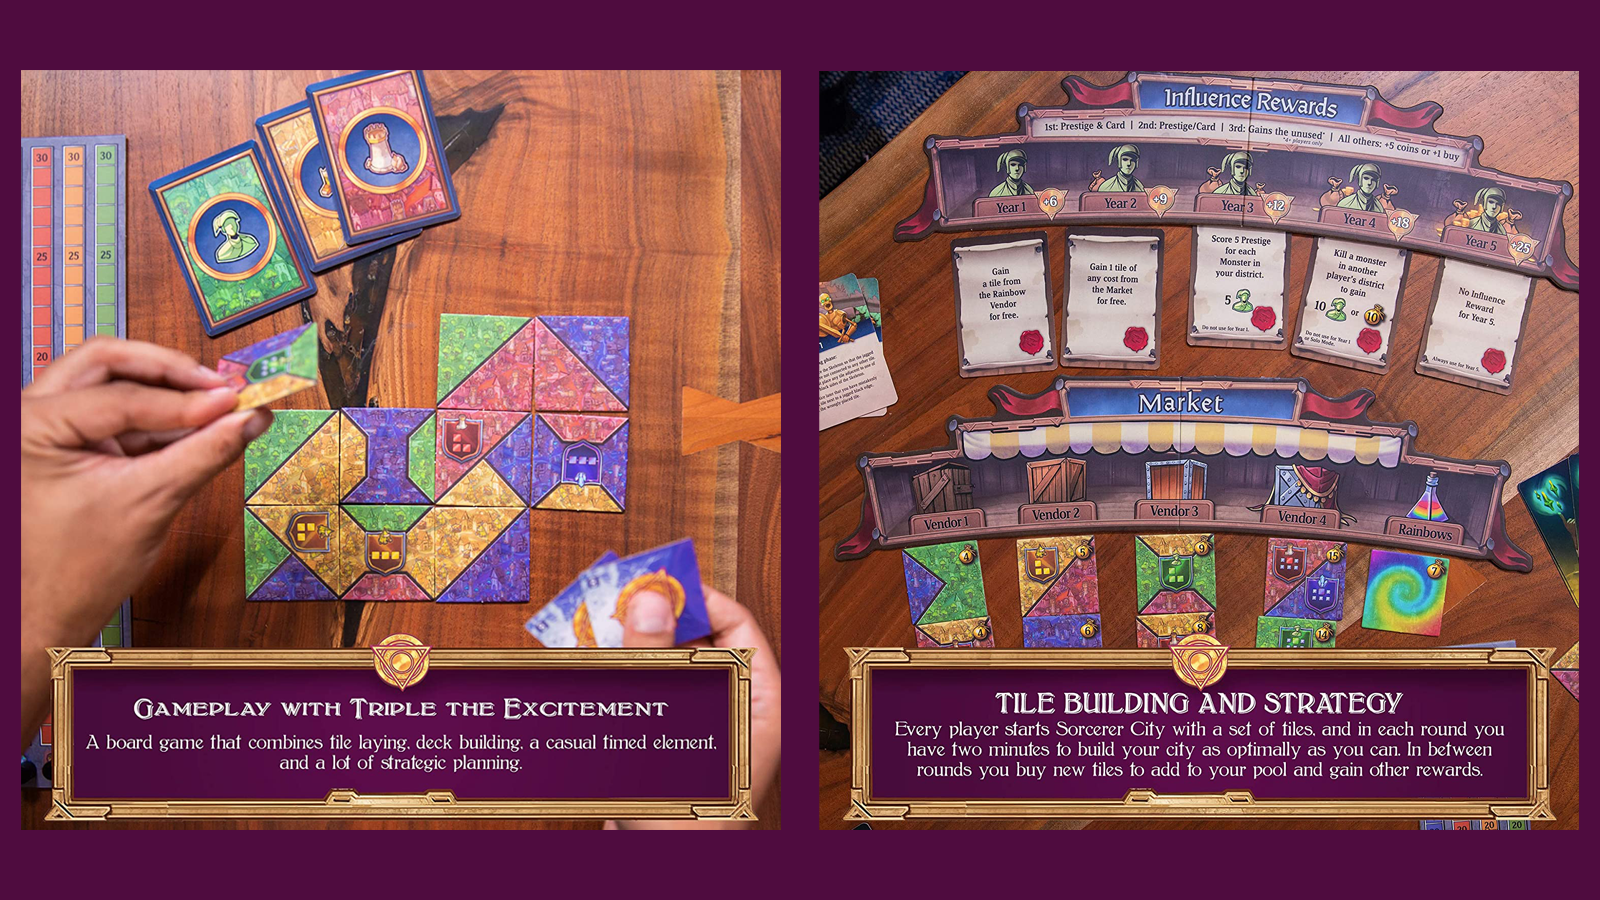 Top-down view of Sorcerer City board game components on a wooden table